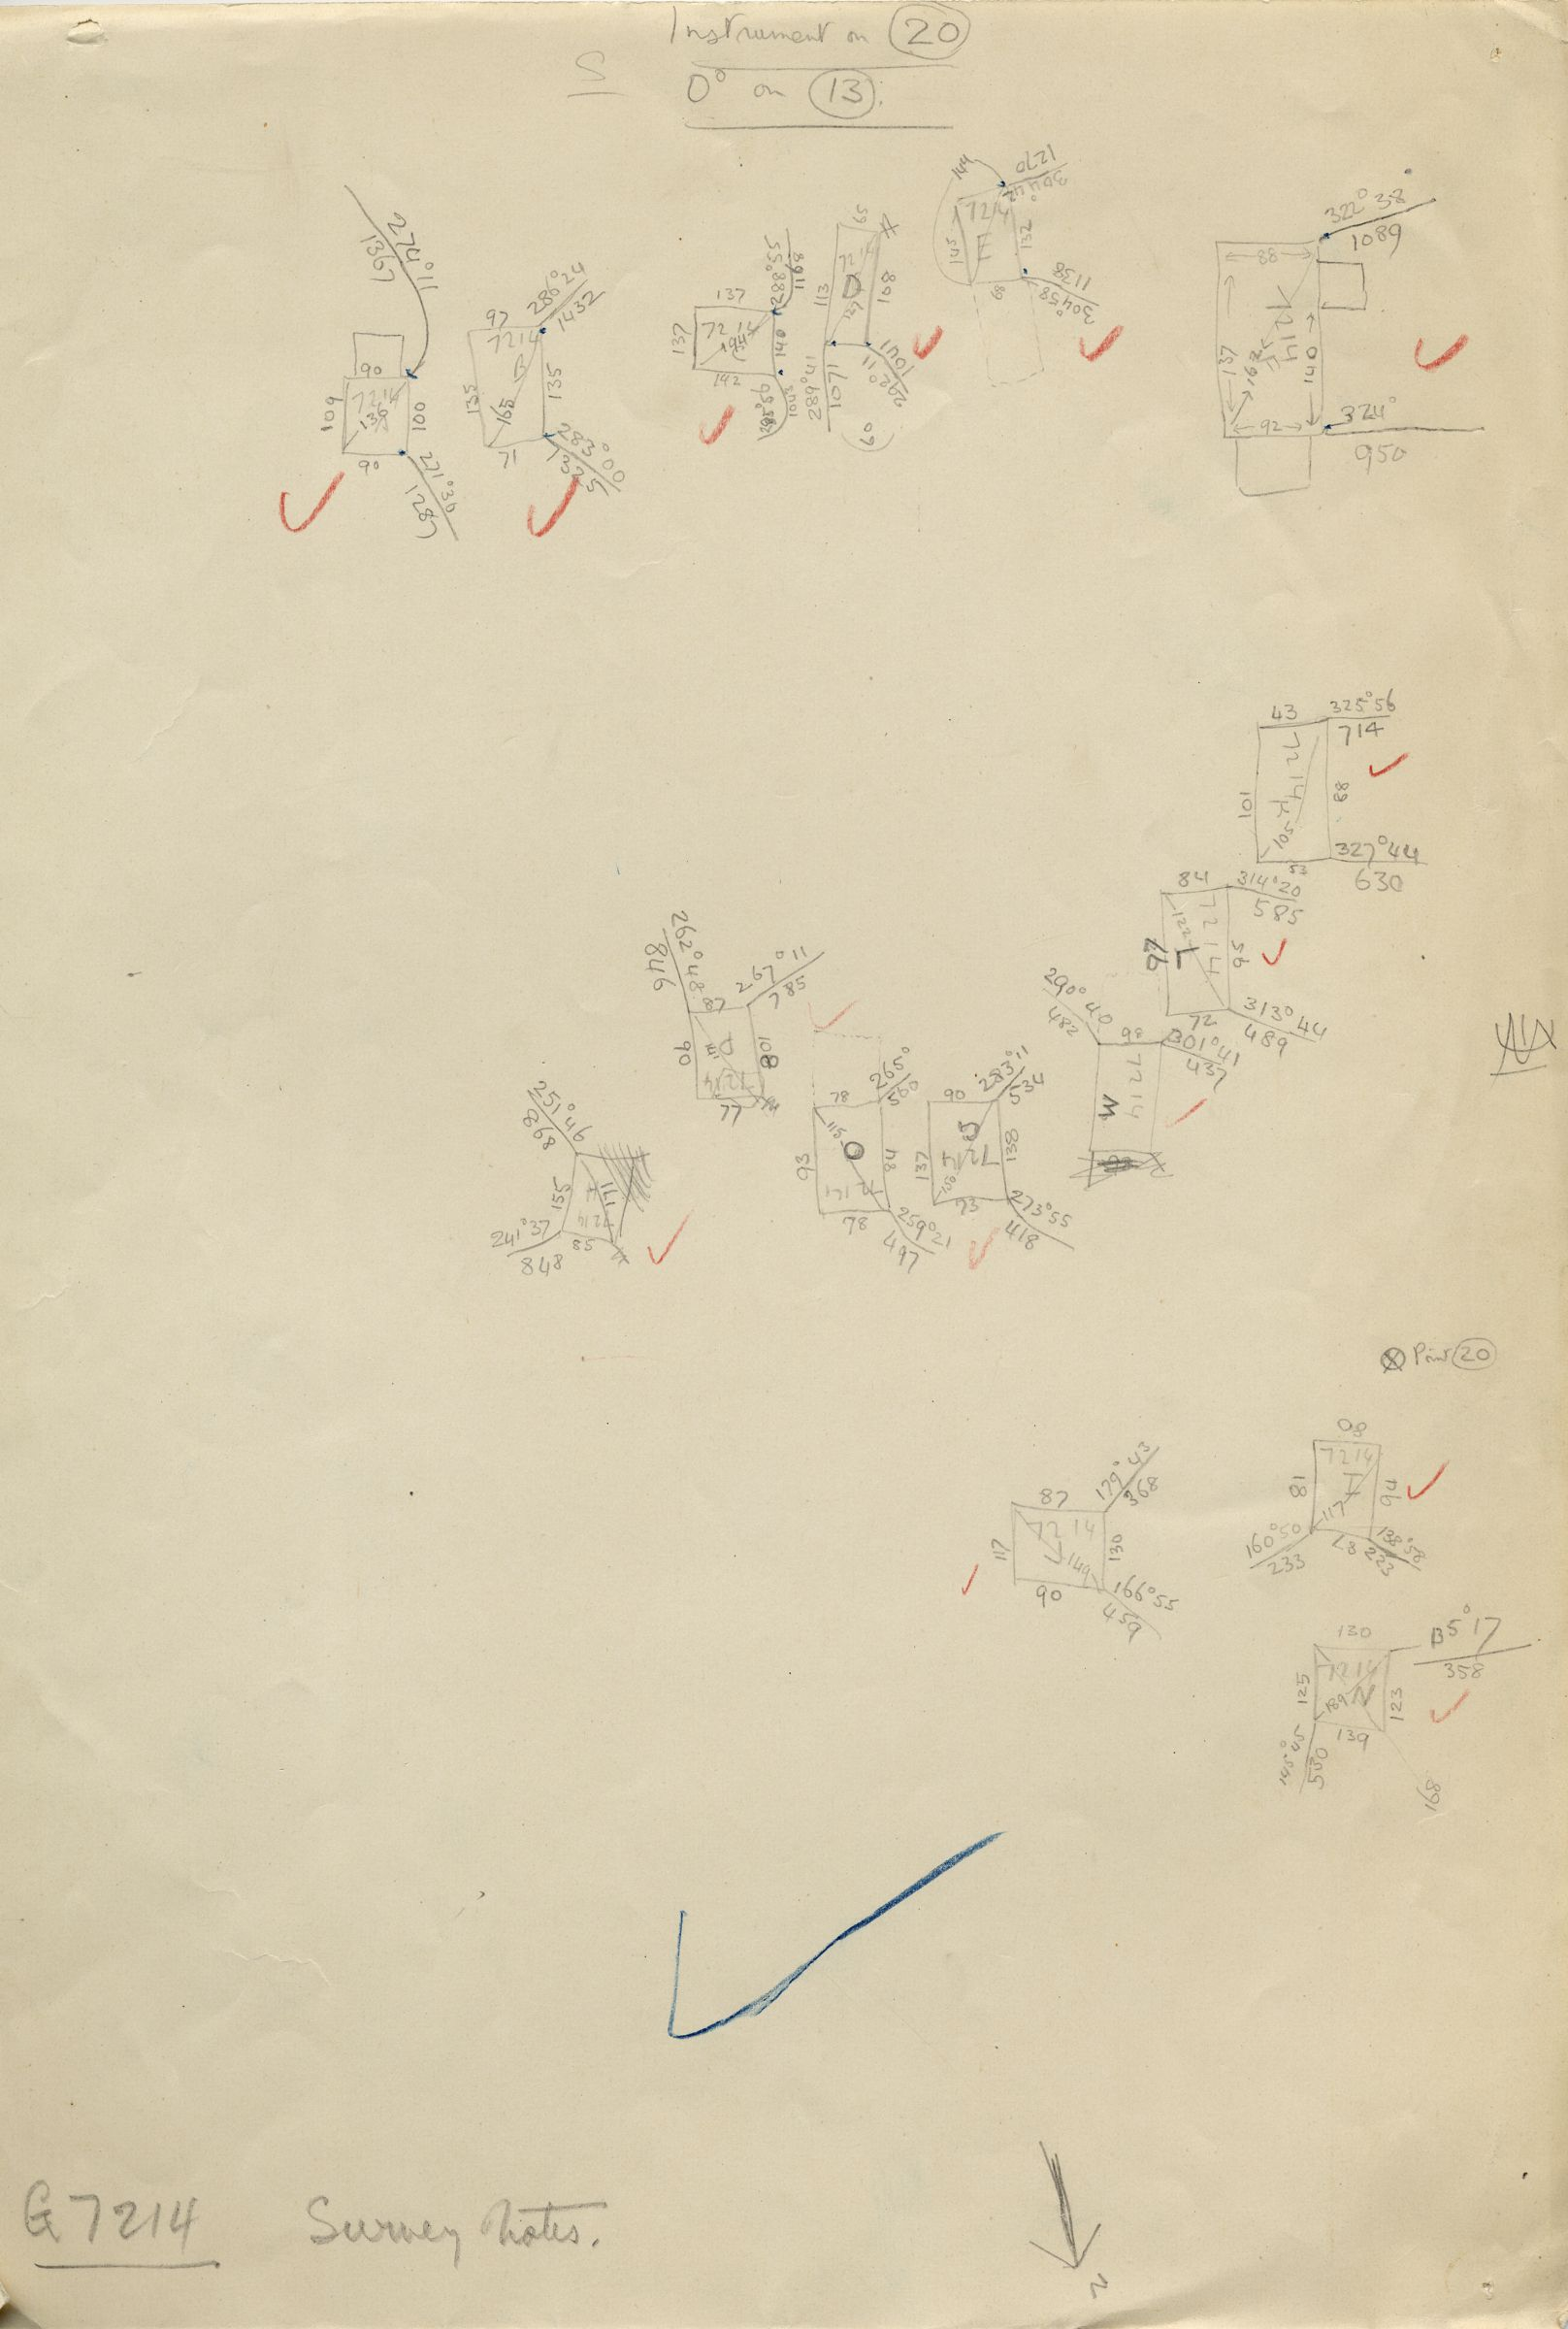 Maps and plans: G 7214, Sketch plan of shafts